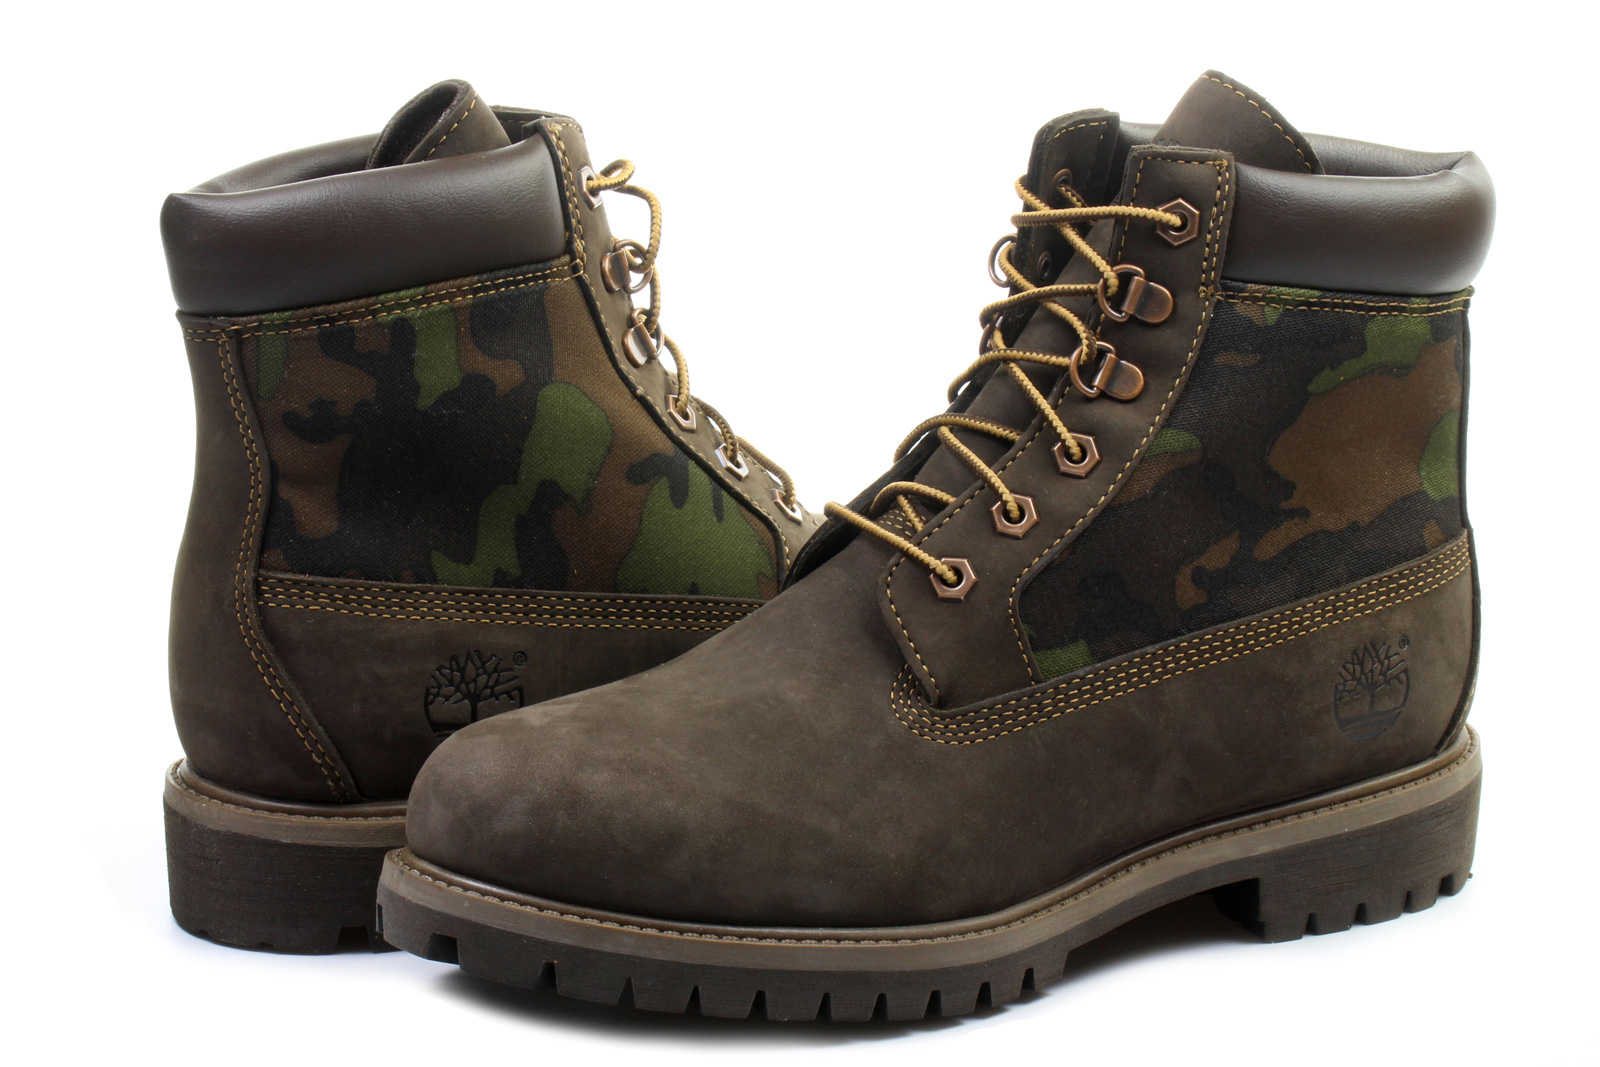 a83dd968e Timberland Topánky - 6 Inch Premium Boot - 6618A-BRN - Tenisky ...